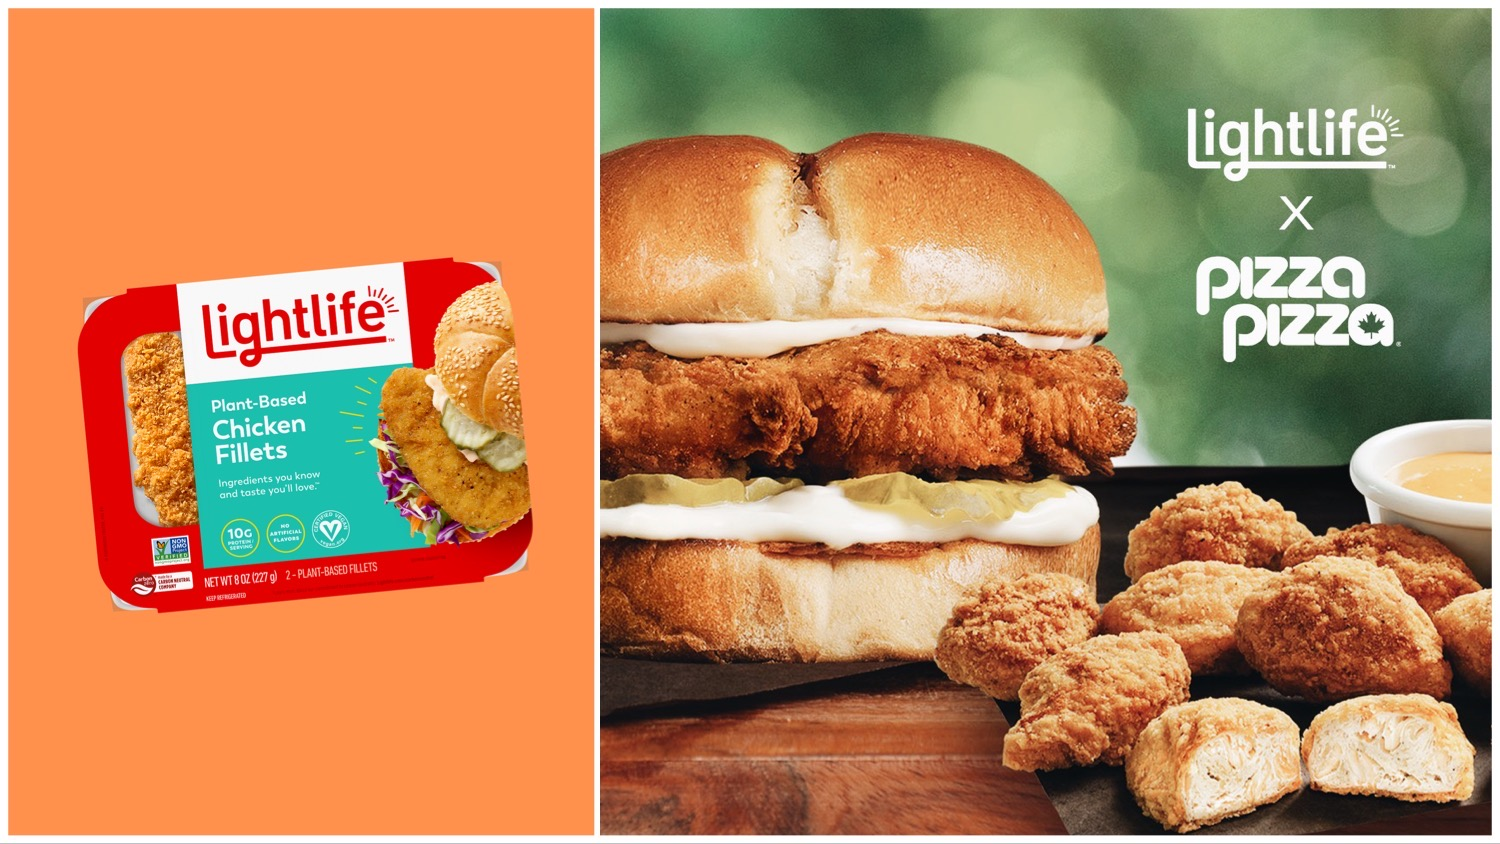 Split image featuring Lightlife vegan chicken packaging on an orange background (left) and prepared as Pizza Pizza's burger and bites (right).